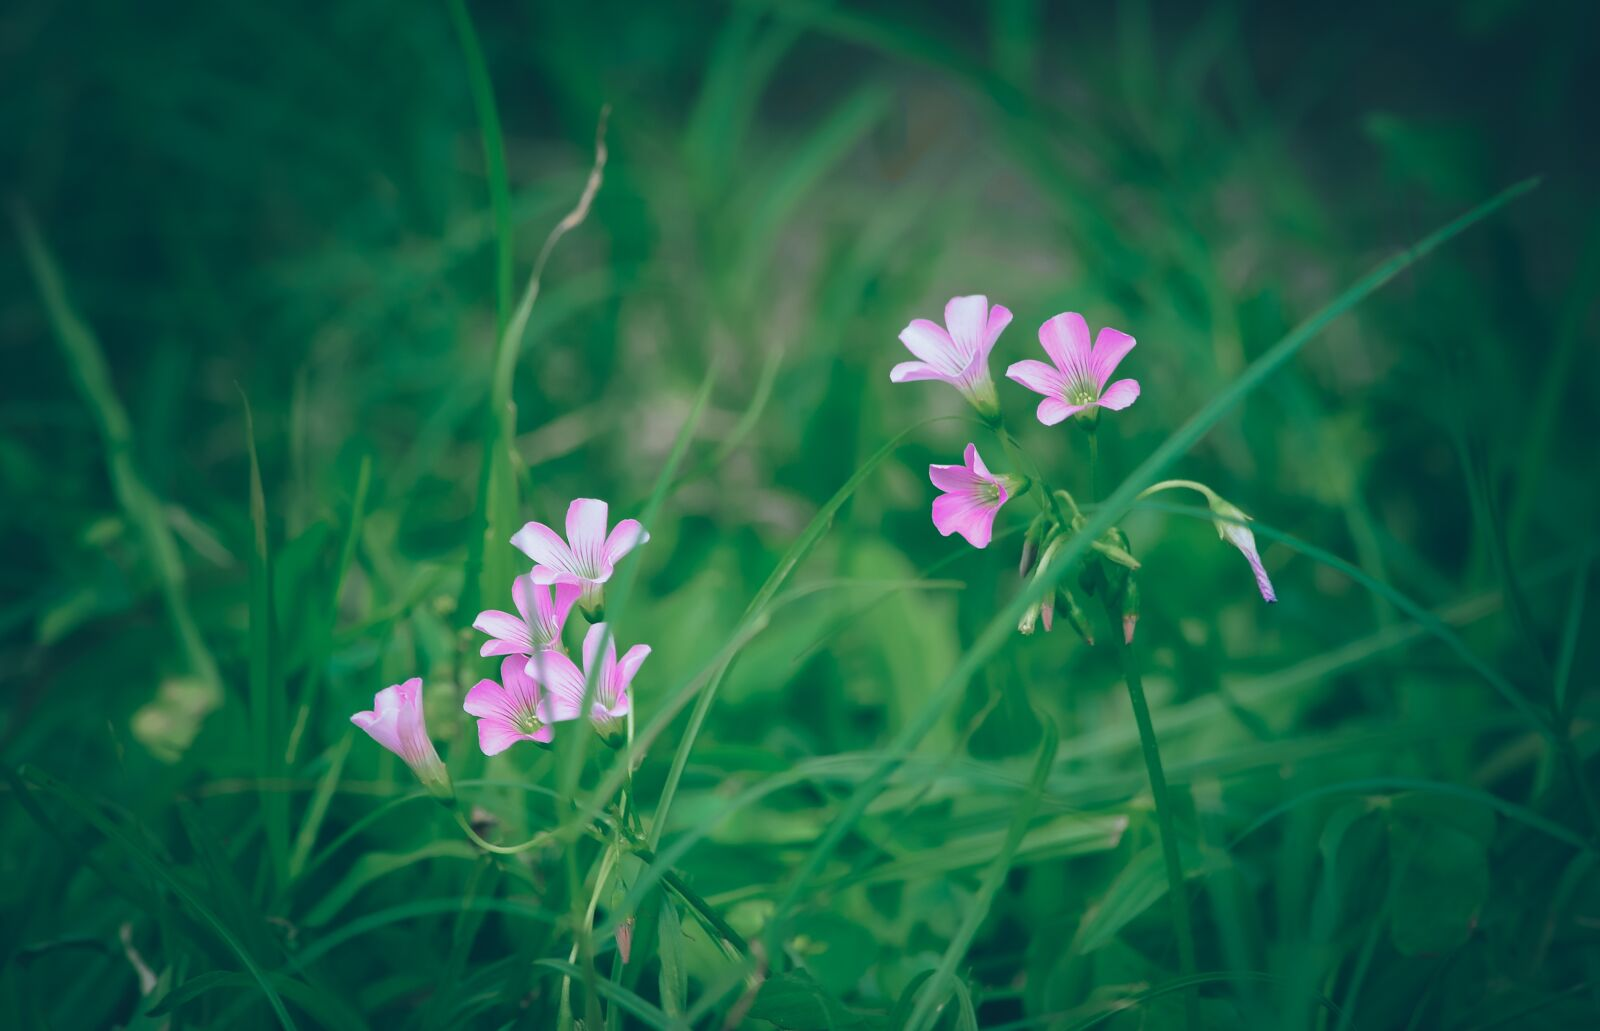 """Nikon D700 sample photo. """"Flower, violet, blooming"""" photography"""